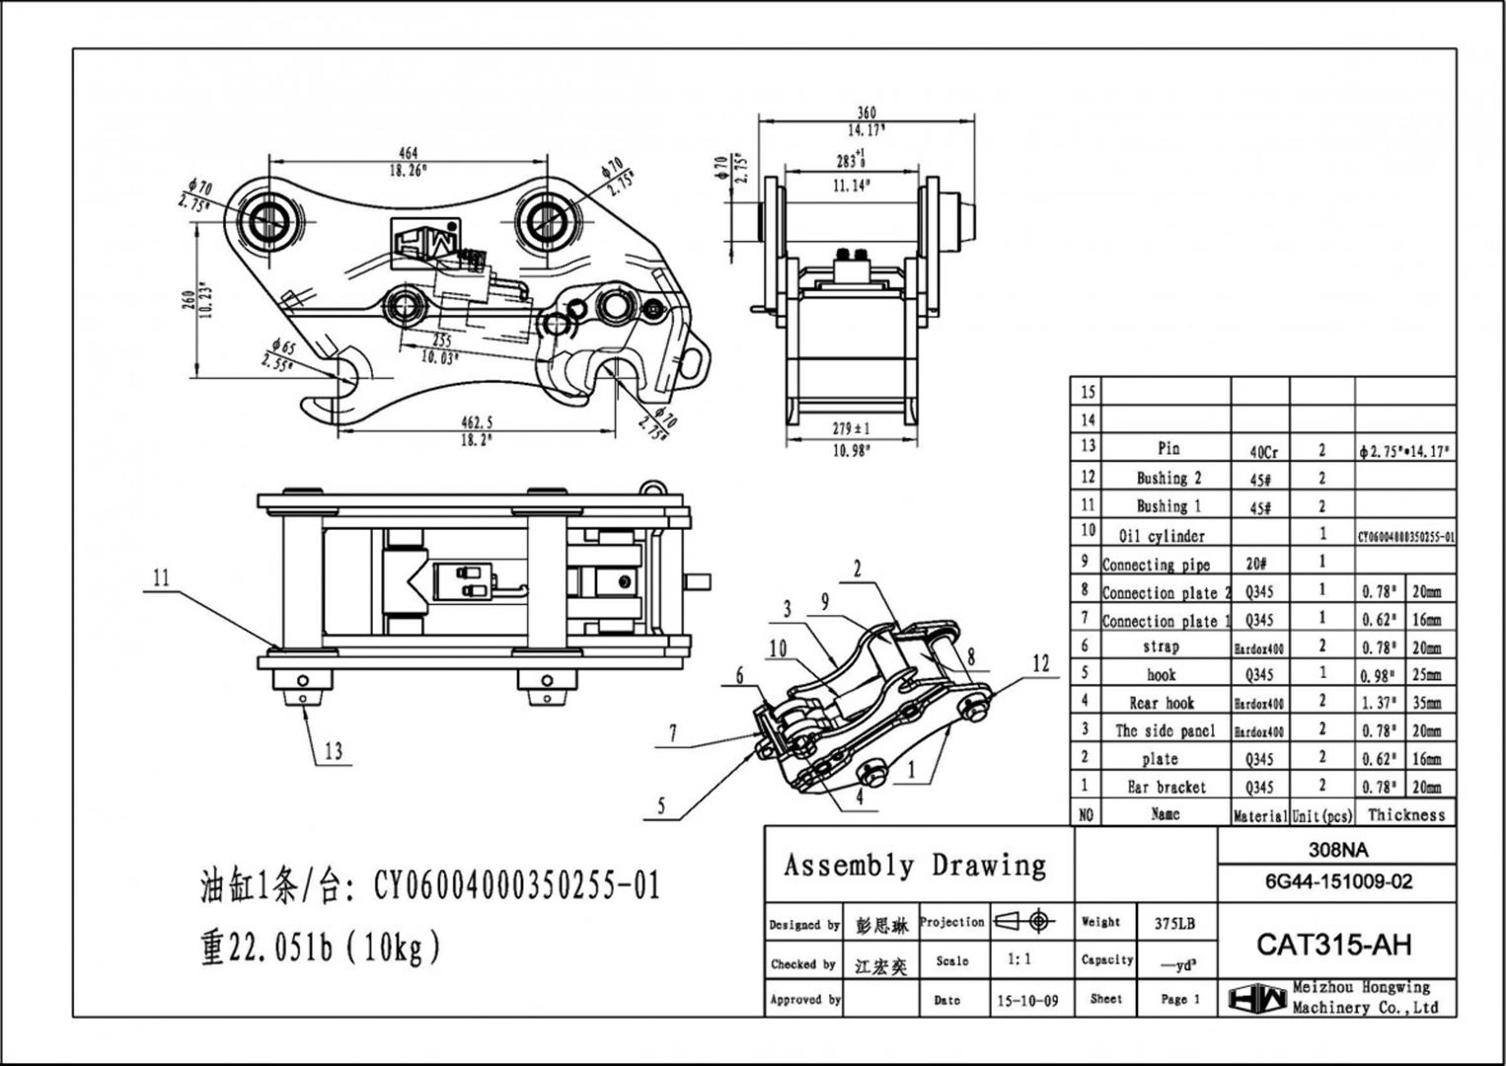 1925 model t ford wiring diagram baumatic oven element 1927 auto